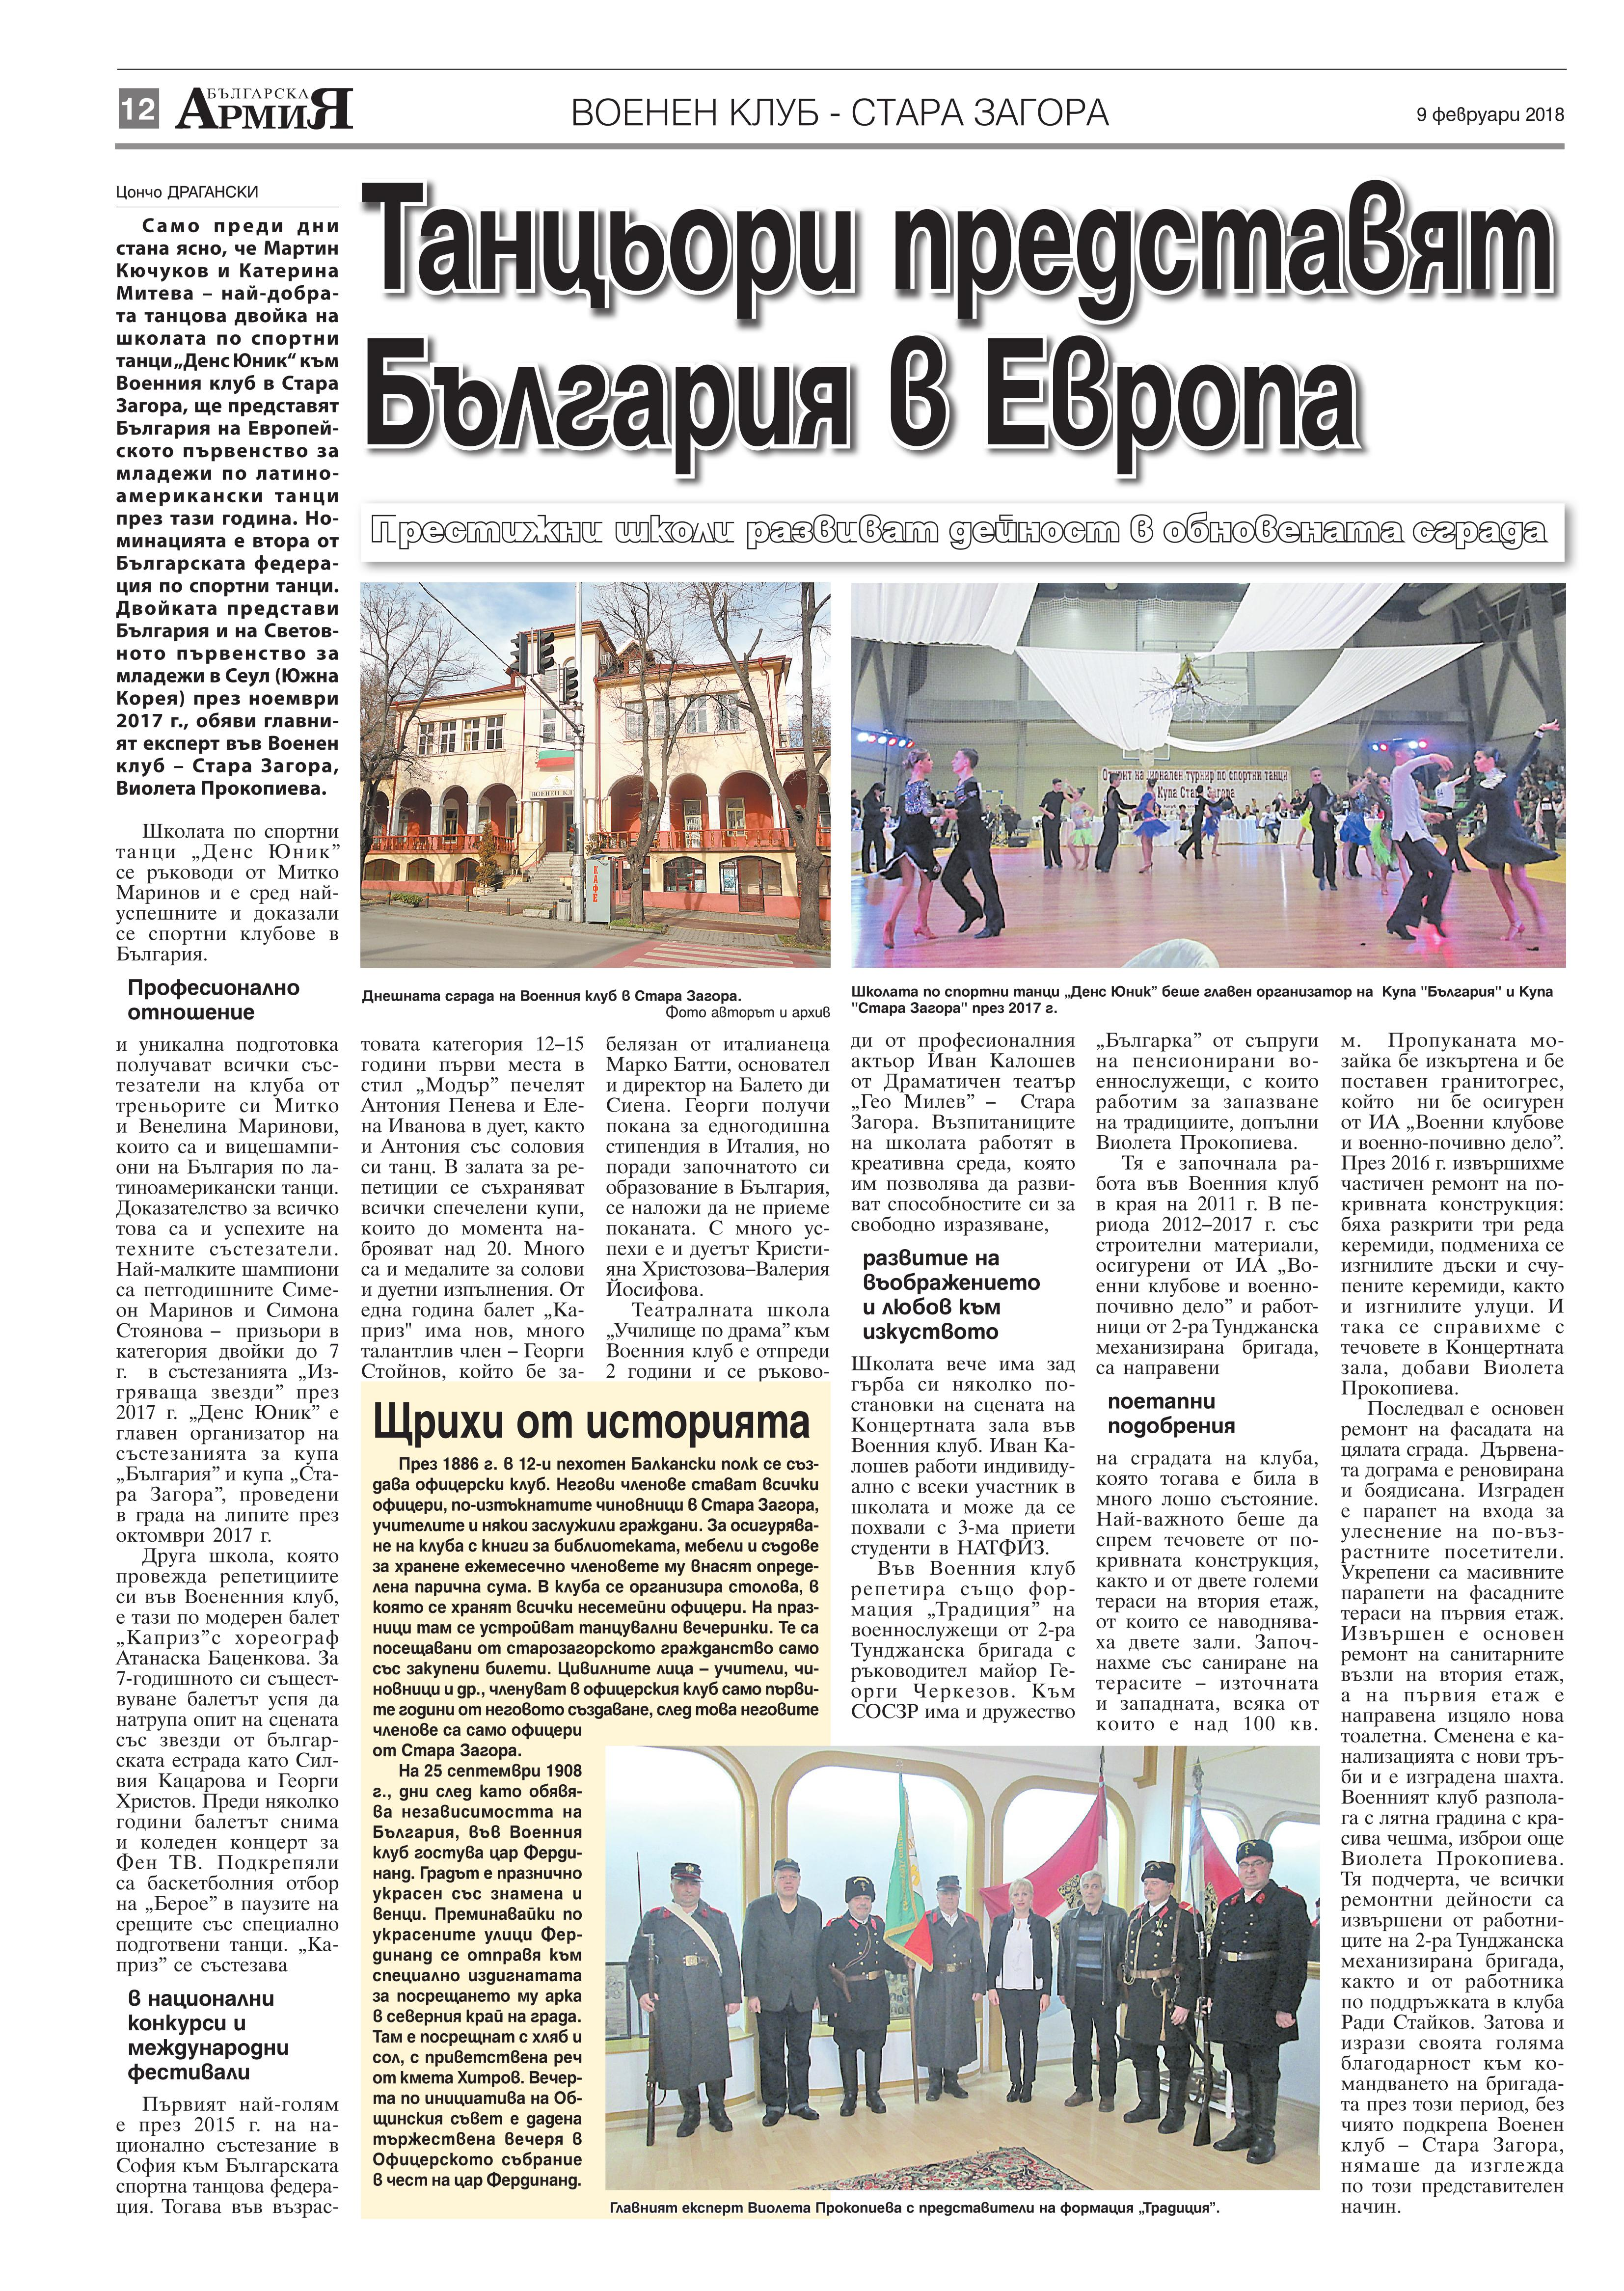 http://armymedia.bg/wp-content/uploads/2015/06/12.page1_-38.jpg